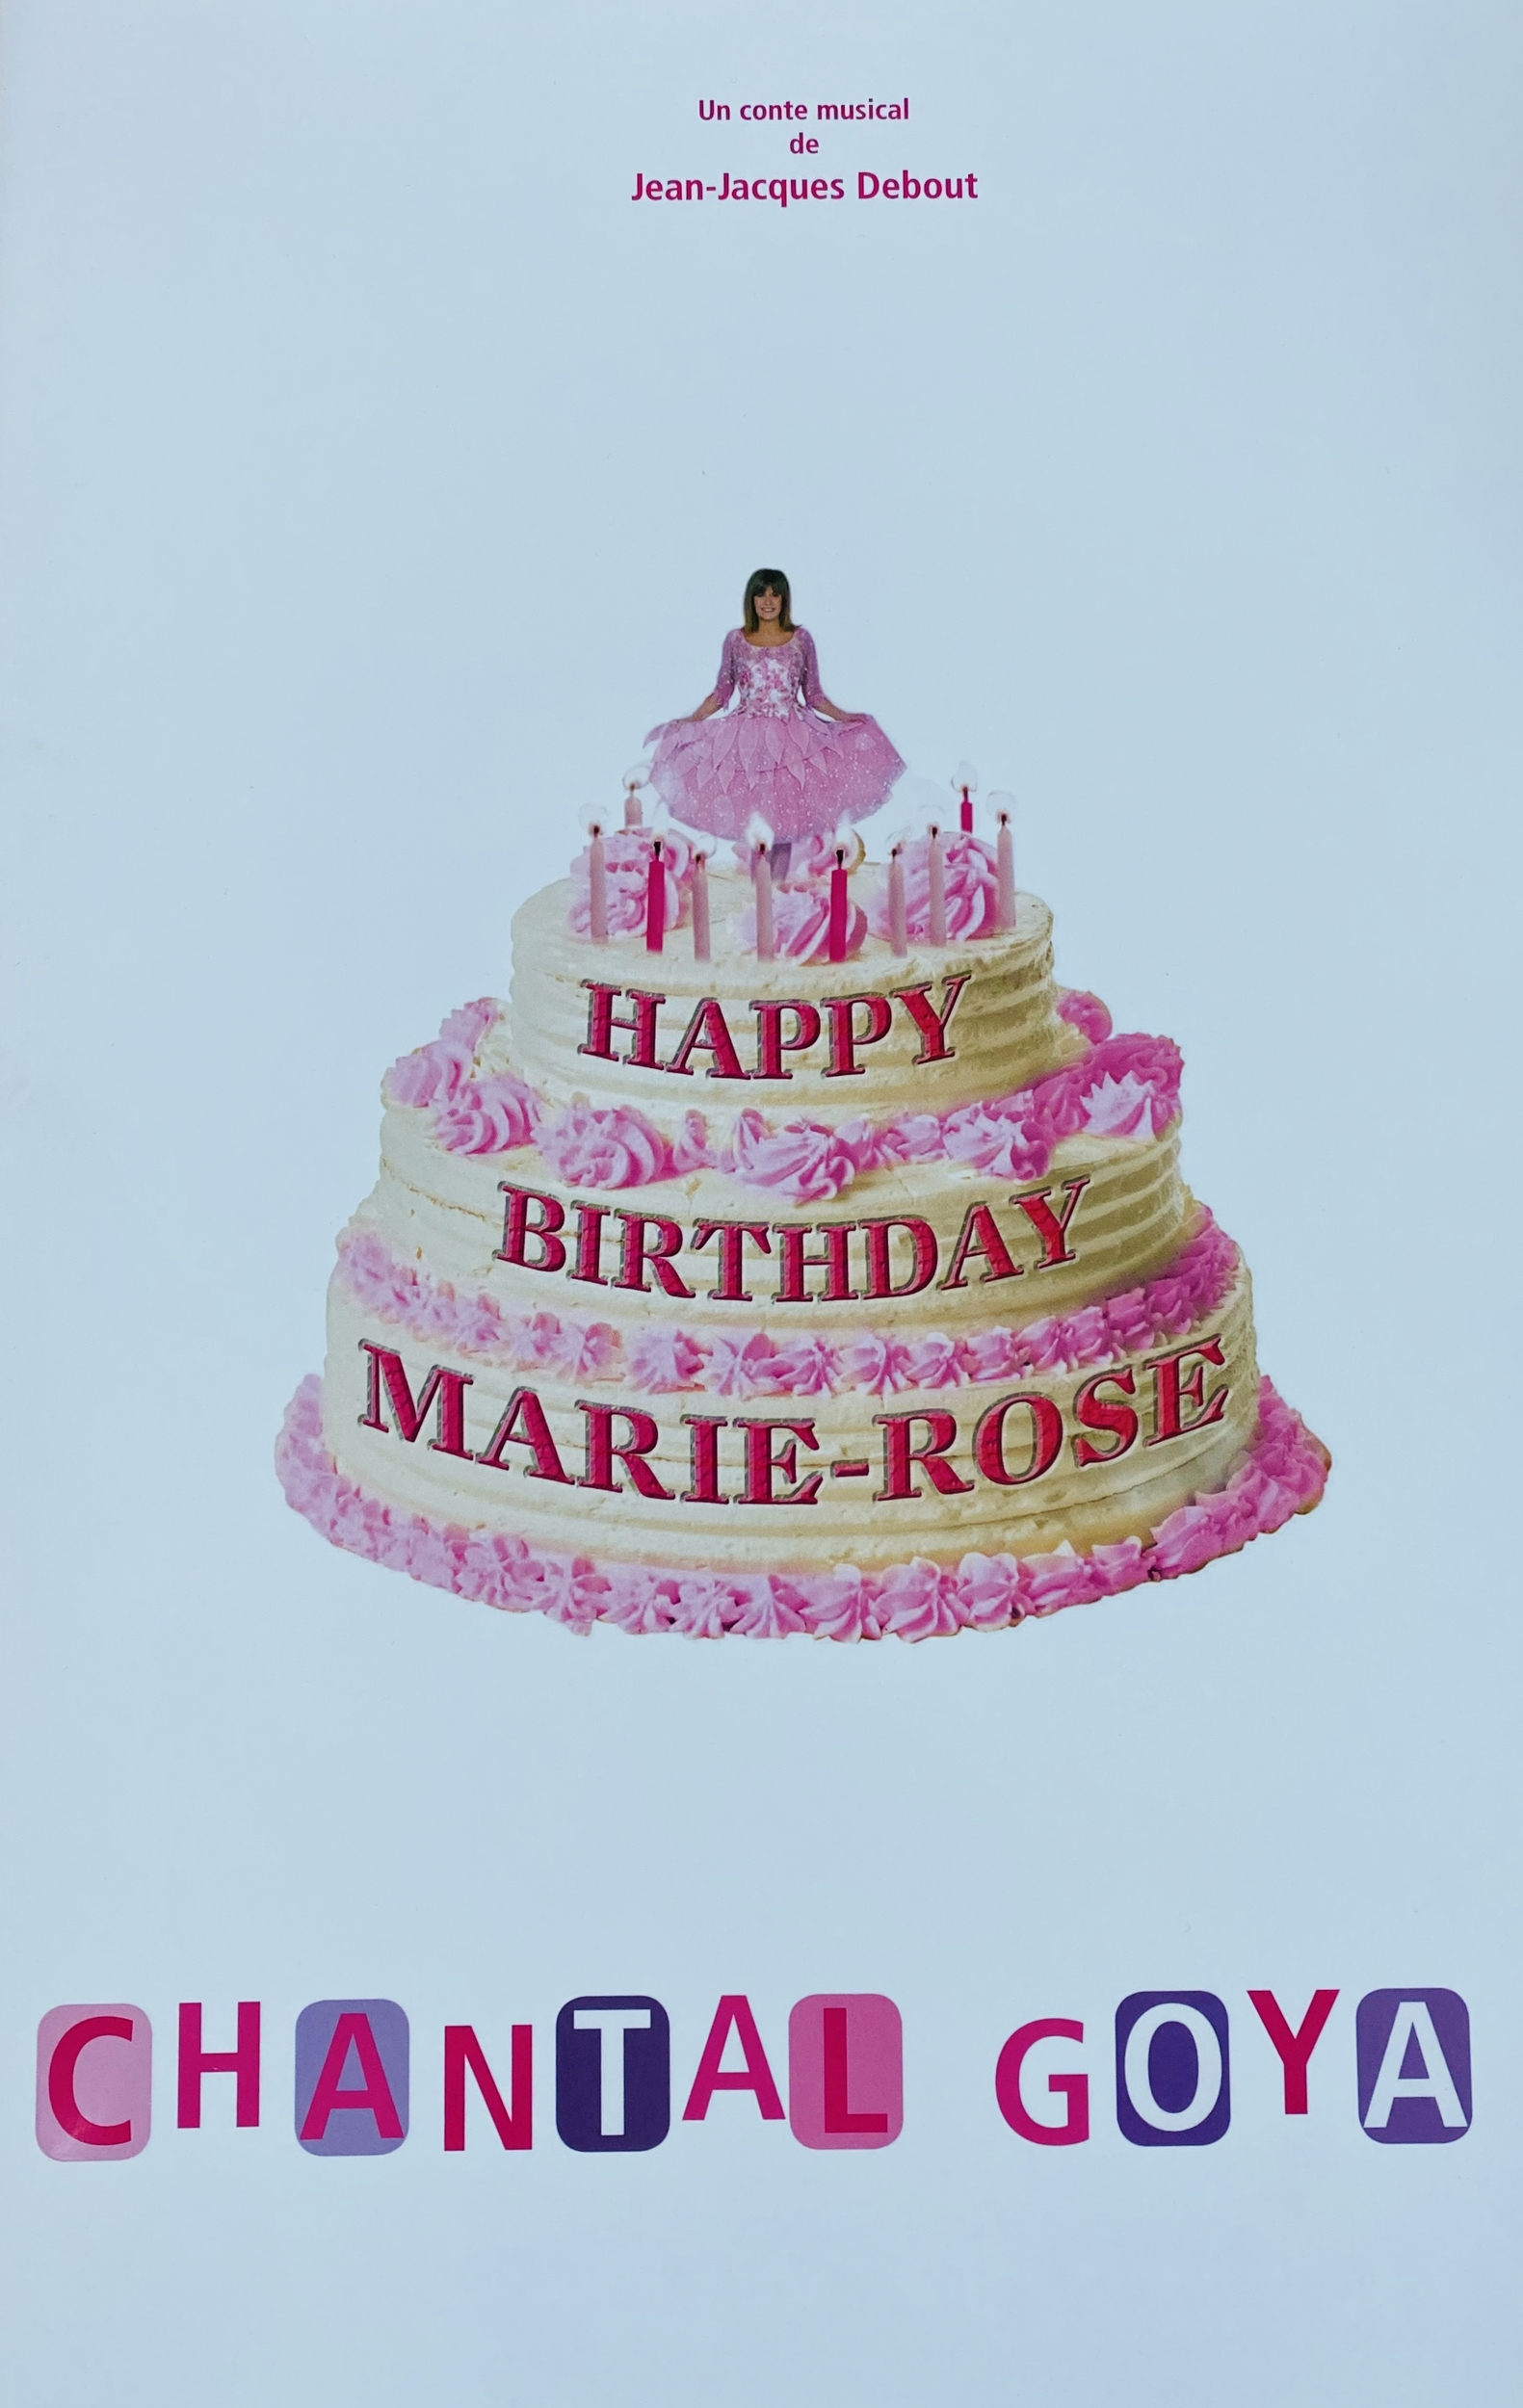 PROGRAMME - HAPPY BIRTHDAY MARIE-ROSE